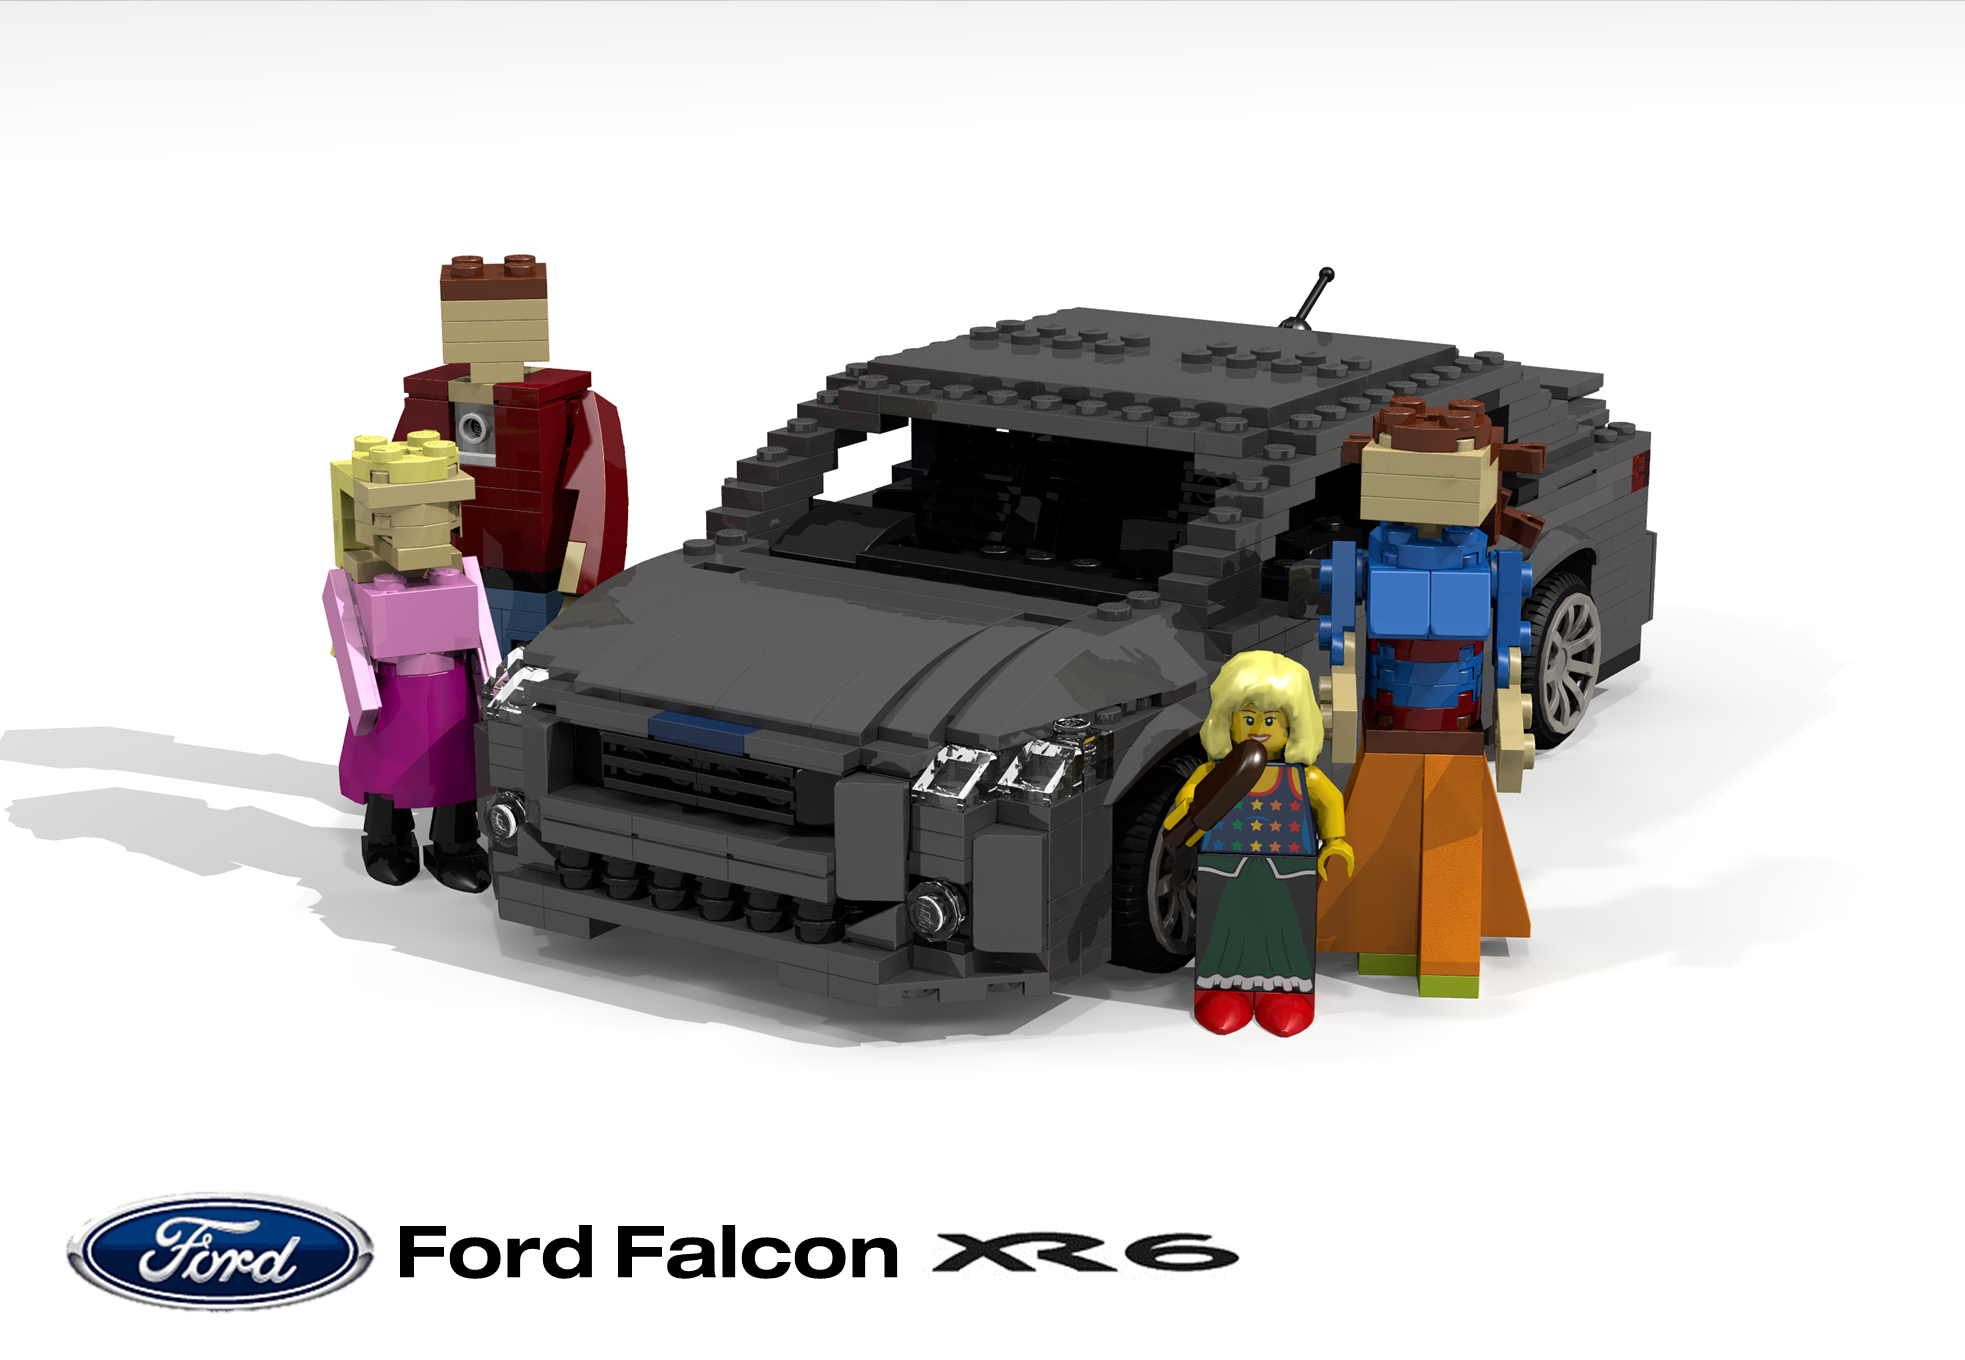 2014_ford_fg_x_falcon_xr6.png